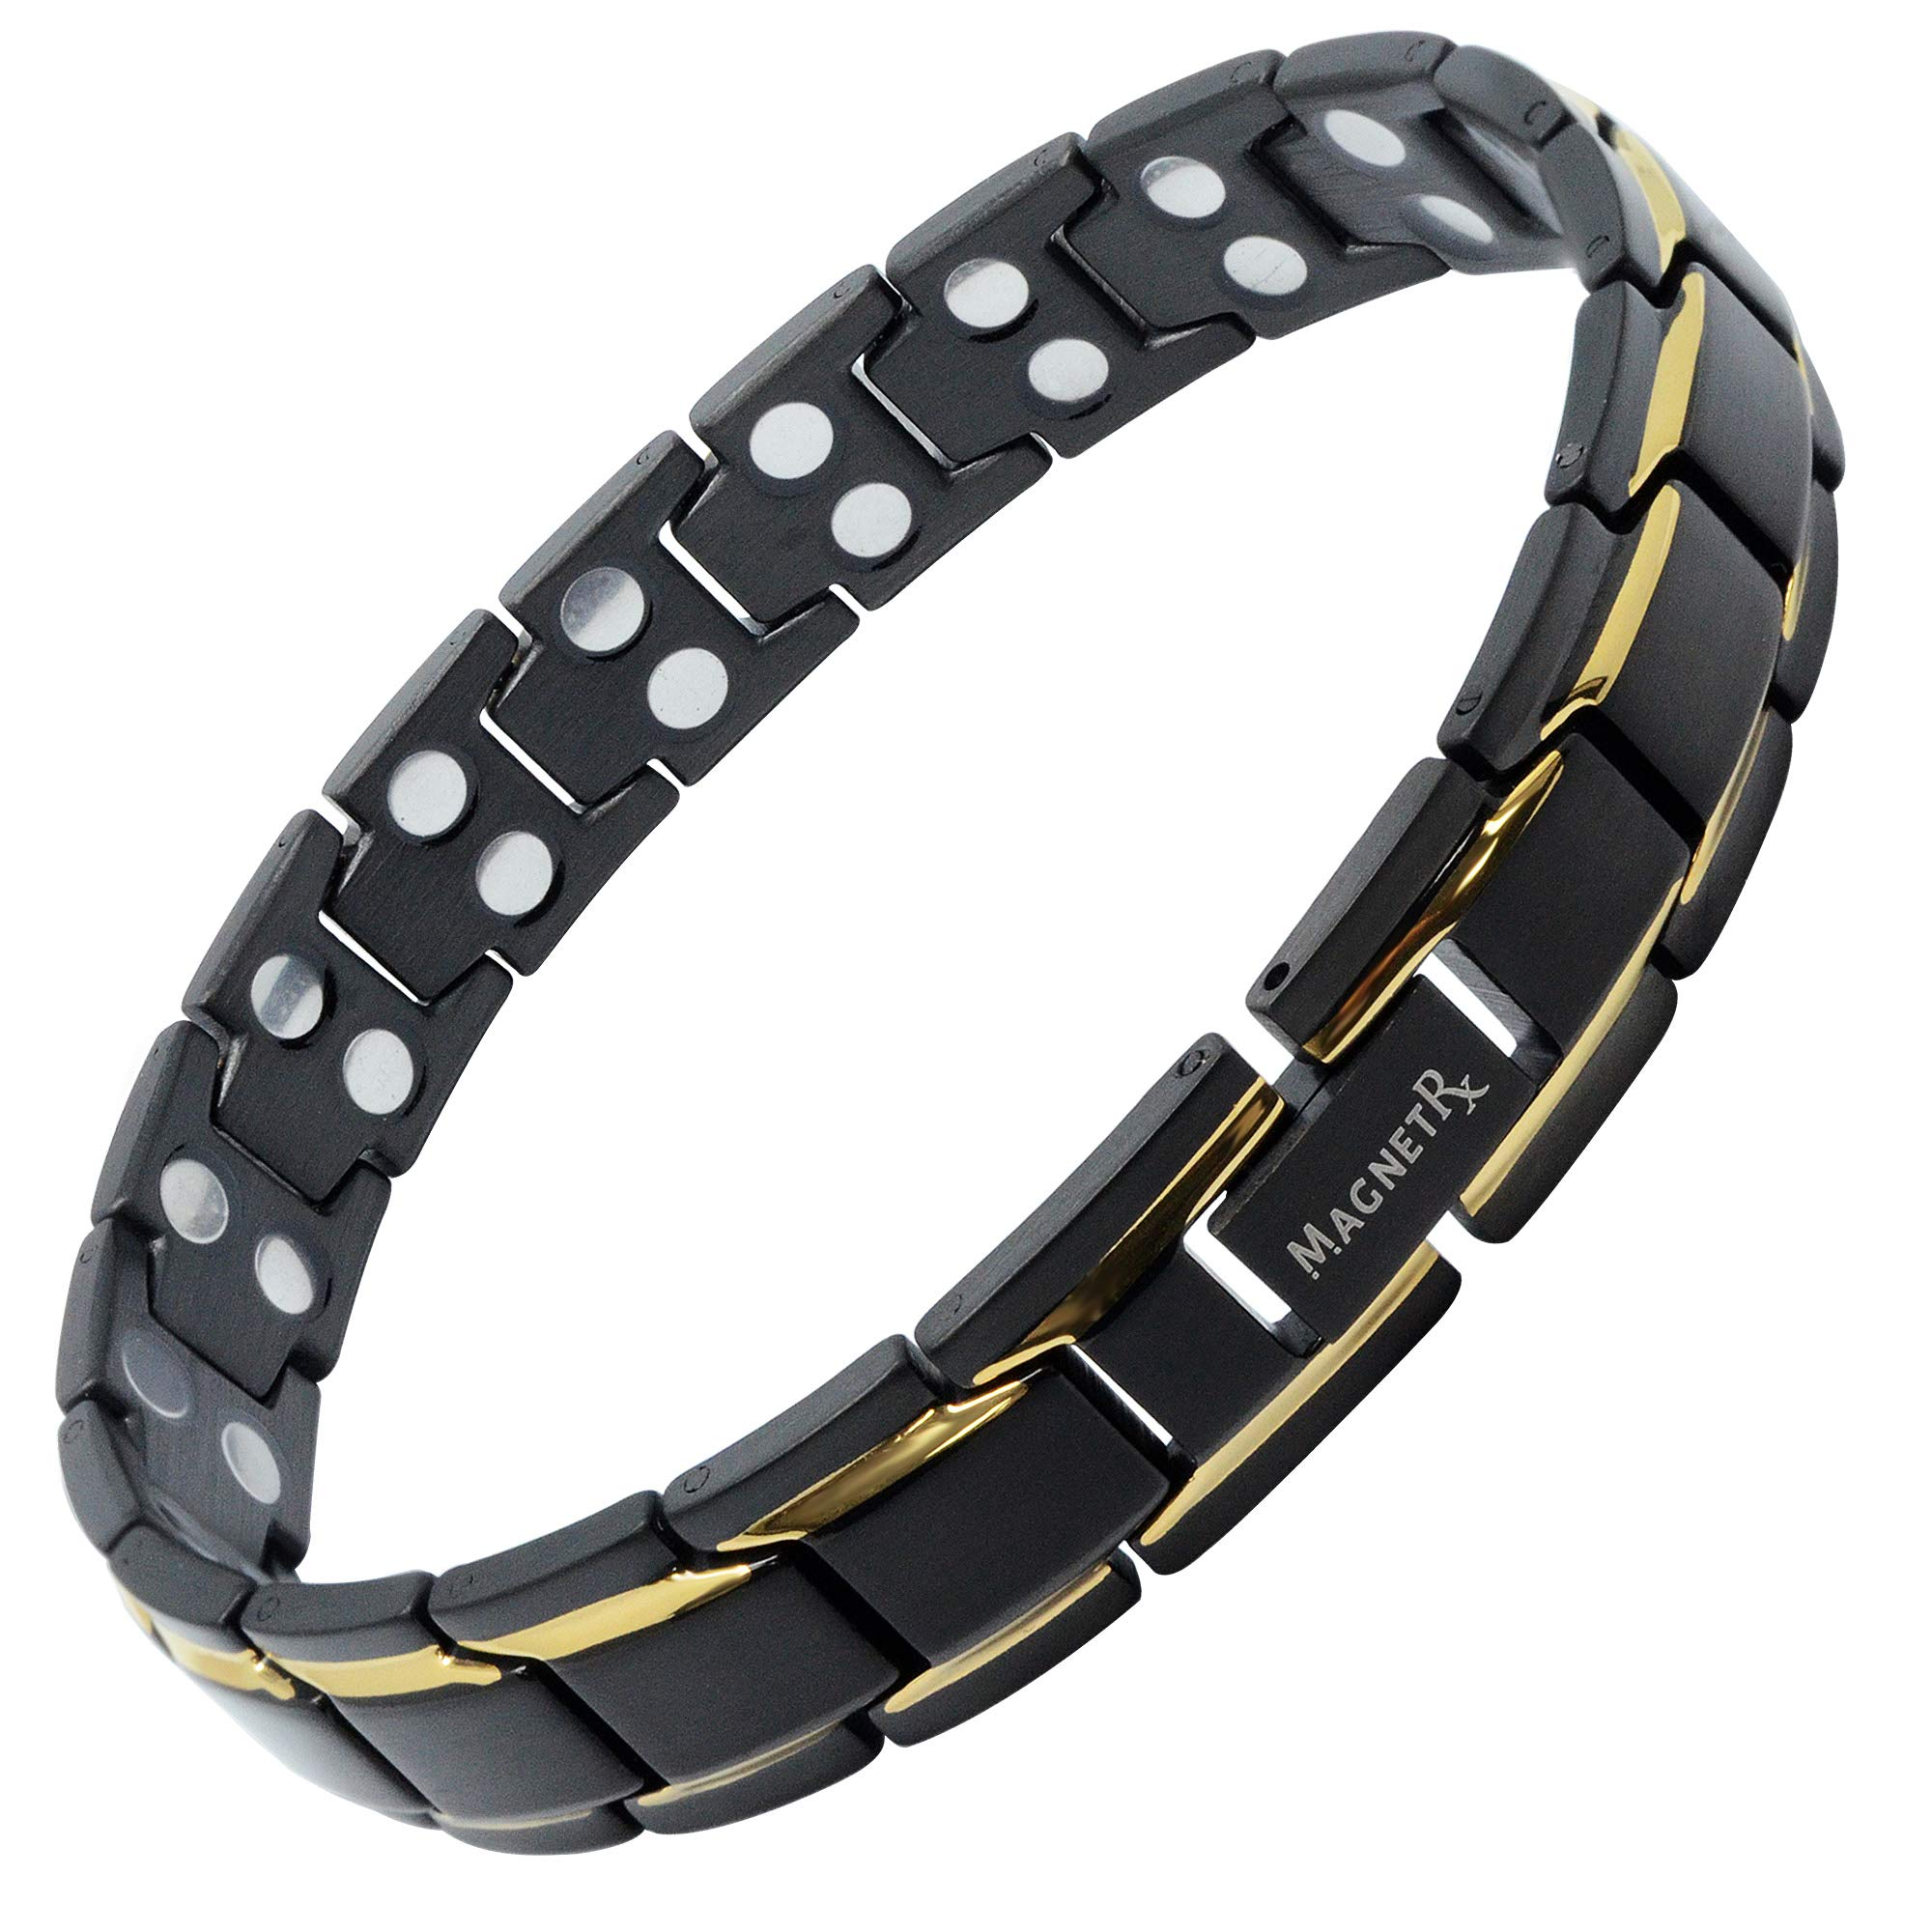 MagnetRX Ultra Strength Magnetic Therapy Bracelet Double Magnet Pain Relief for Arthritis and Carpal Tunnel by MagnetRX (Image #1)